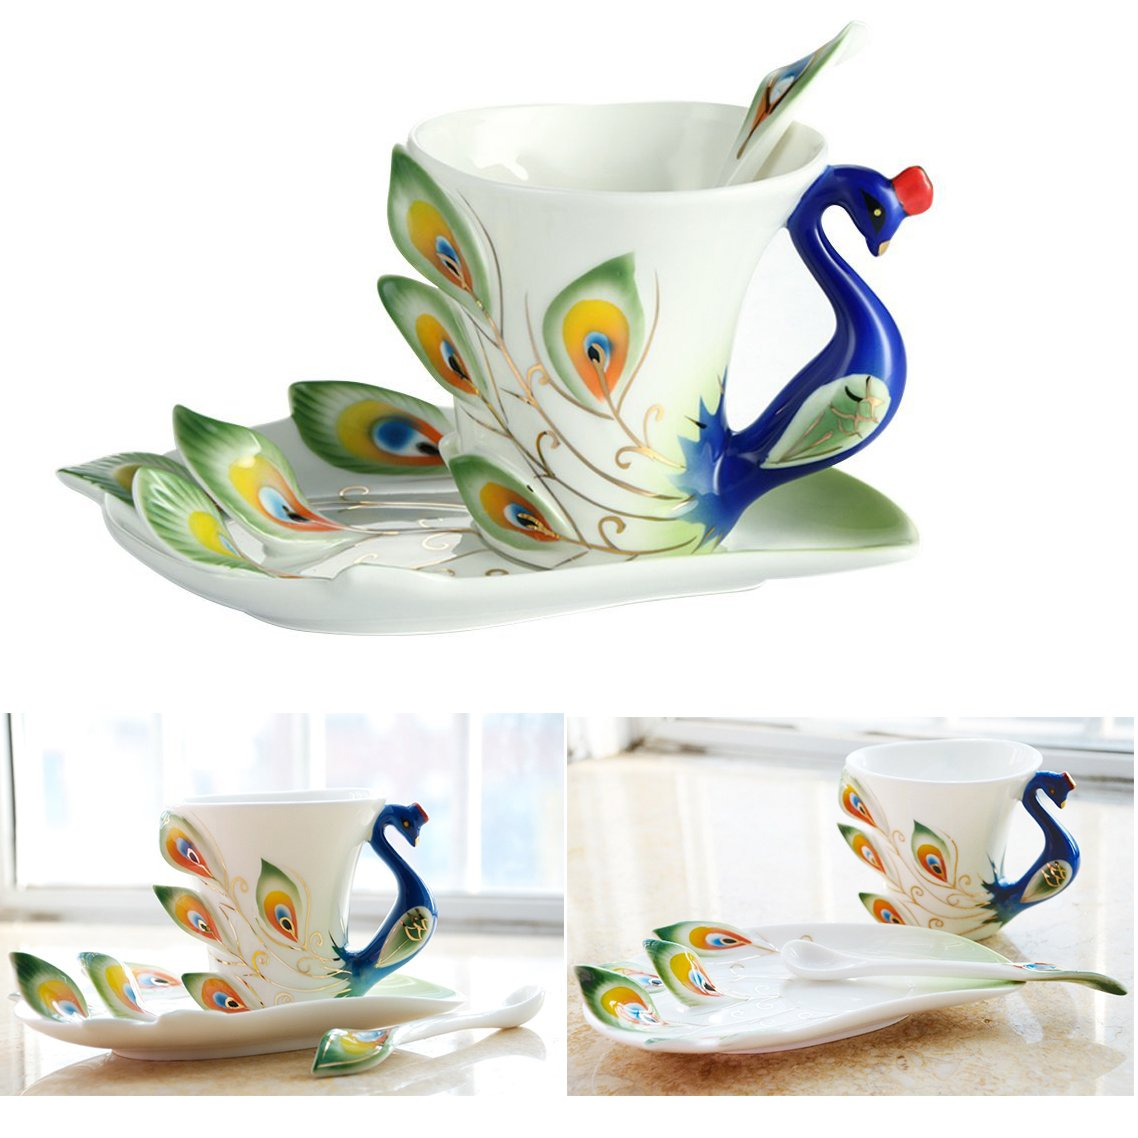 Cisixin Handcrafted 3D Peacock Ceramic Mug Set with Saucer and Spoon Tea/Coffee Cup (Green, Peacock)